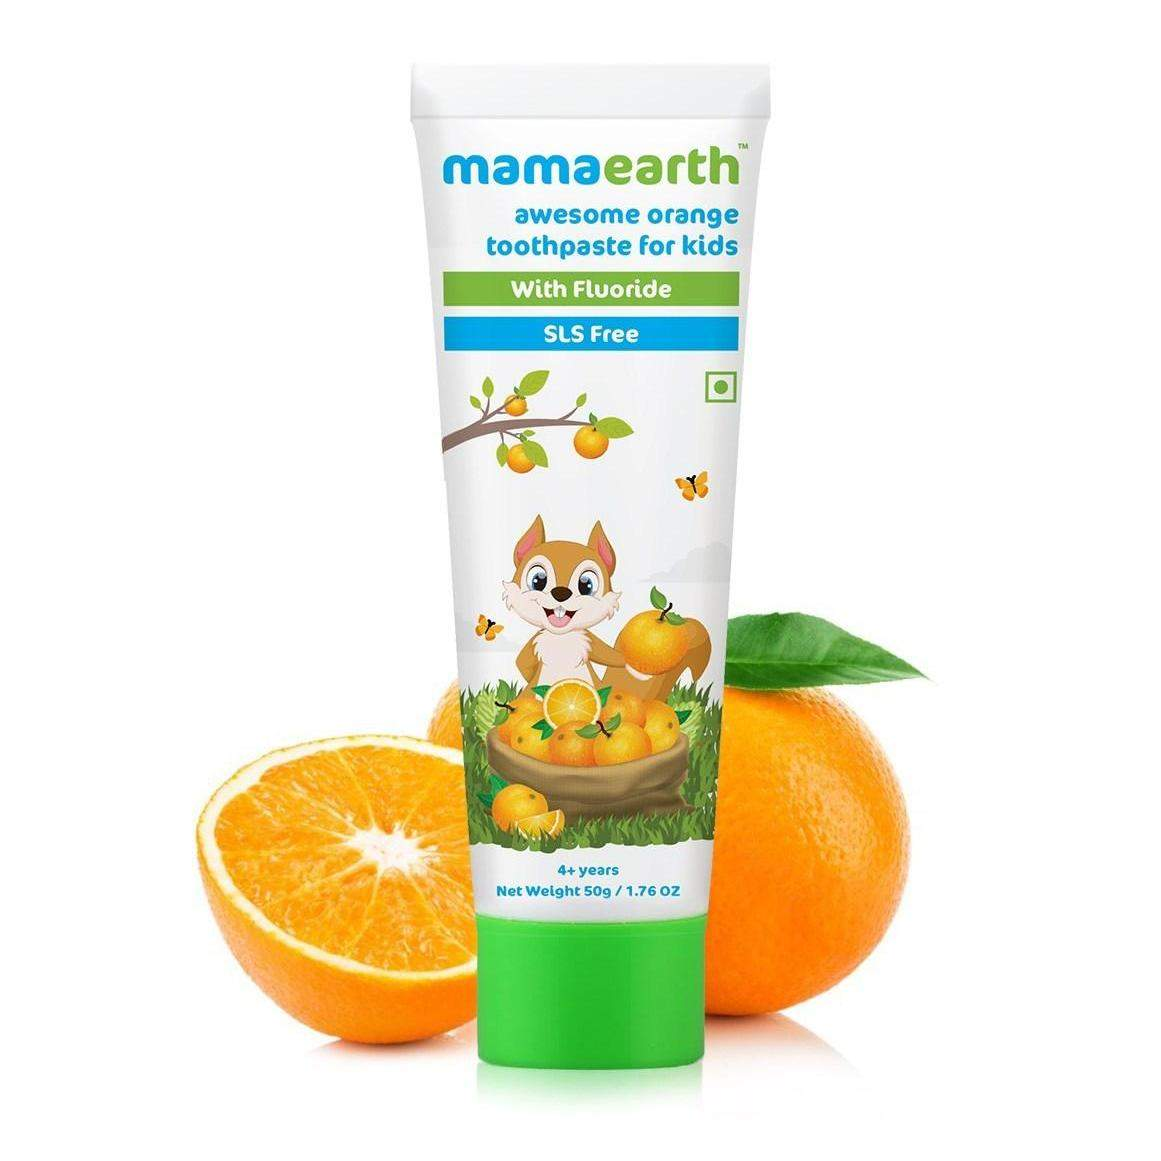 Mamaearth Awesome Orange Toothpaste, 50Gm